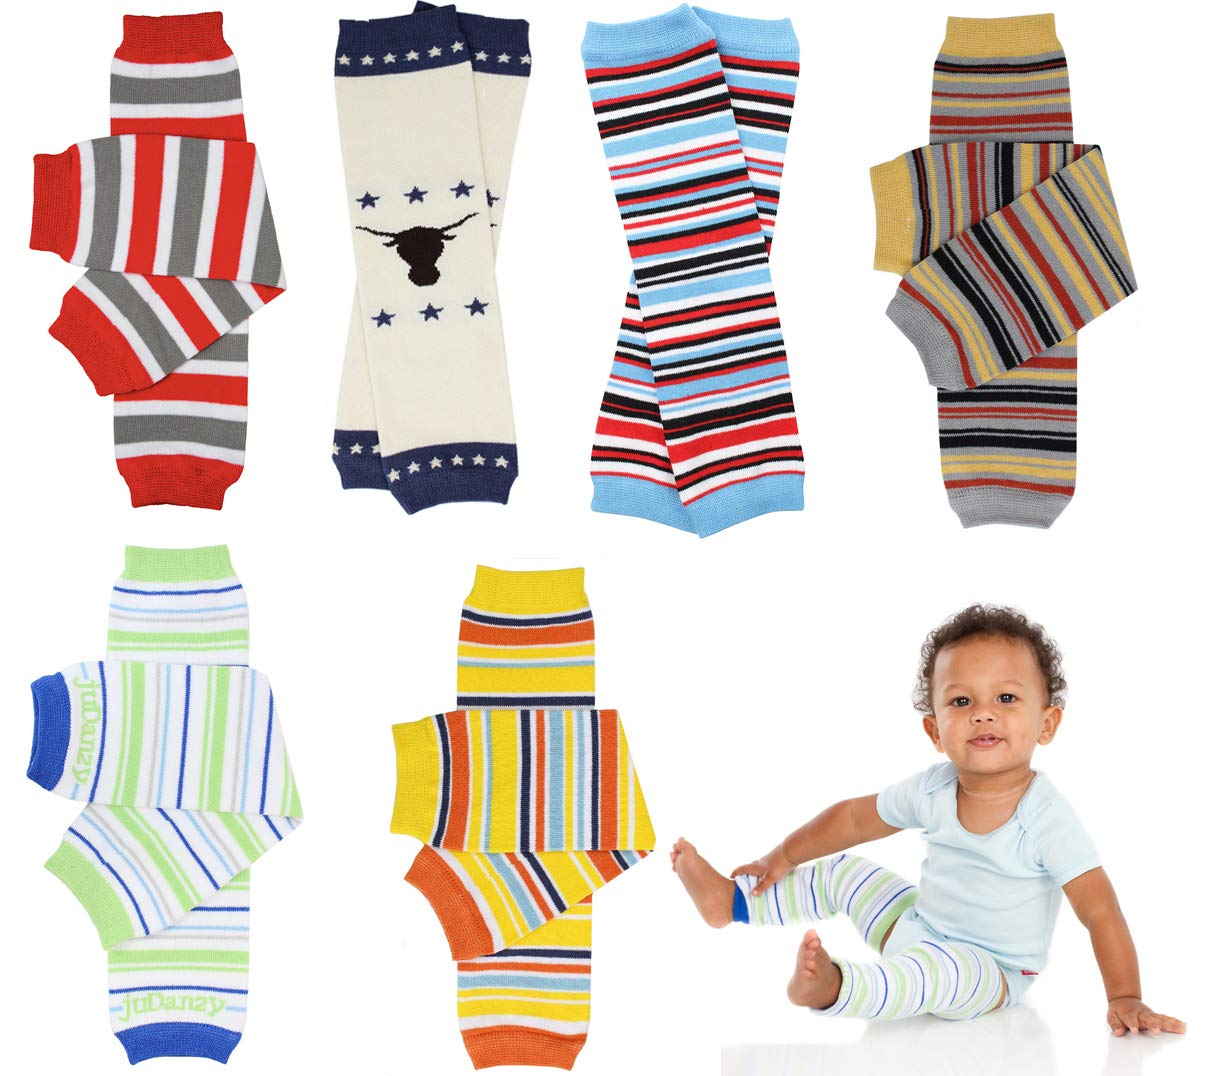 juDanzy 6 Pack of Boys Leg Warmers by juDanzy